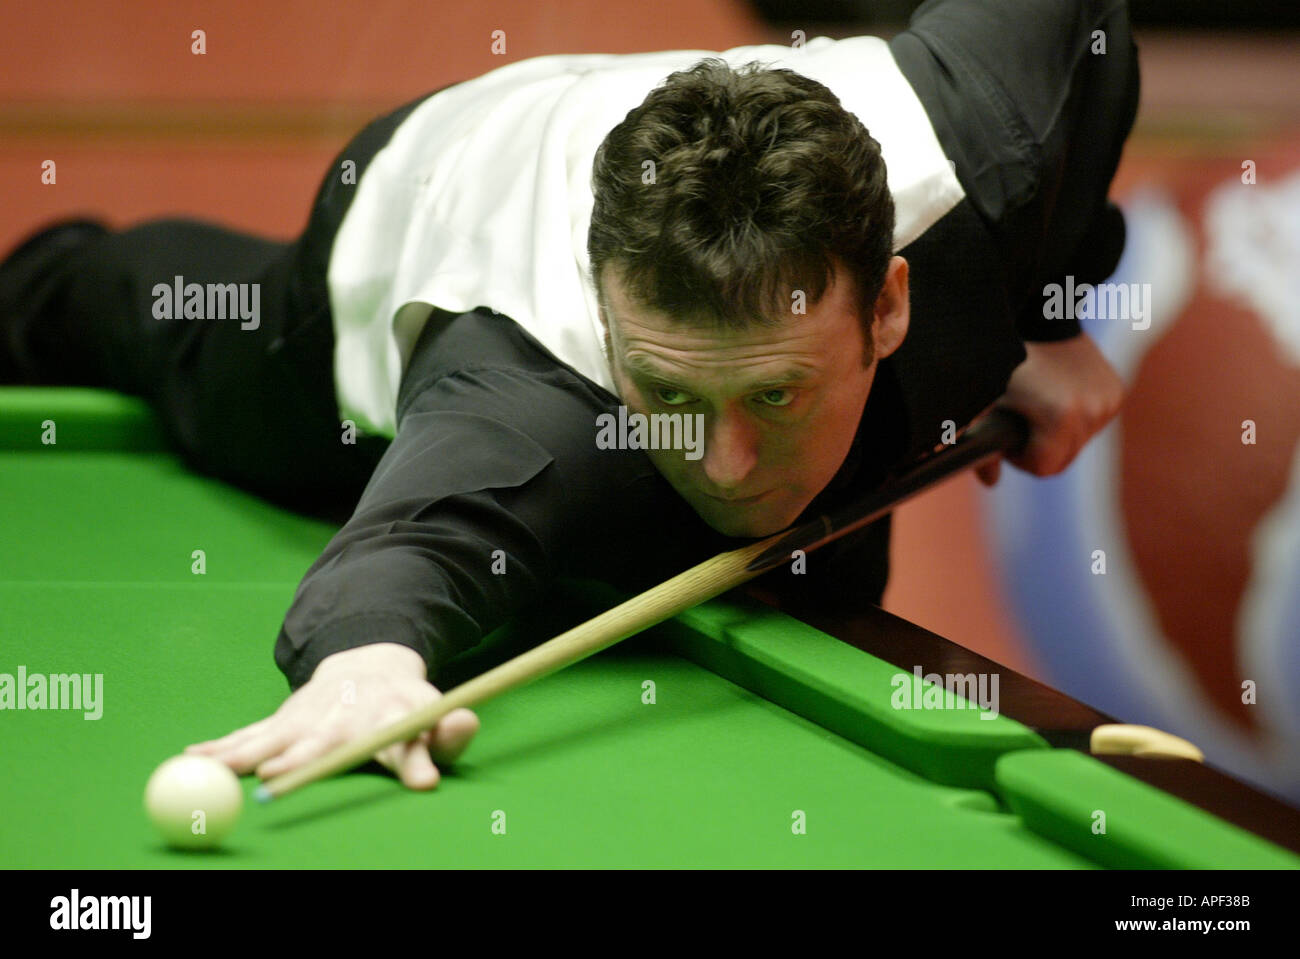 Jimmy White playing in the 2004 World Snooker Championships at the Crucible Theatre Sheffield - Stock Image